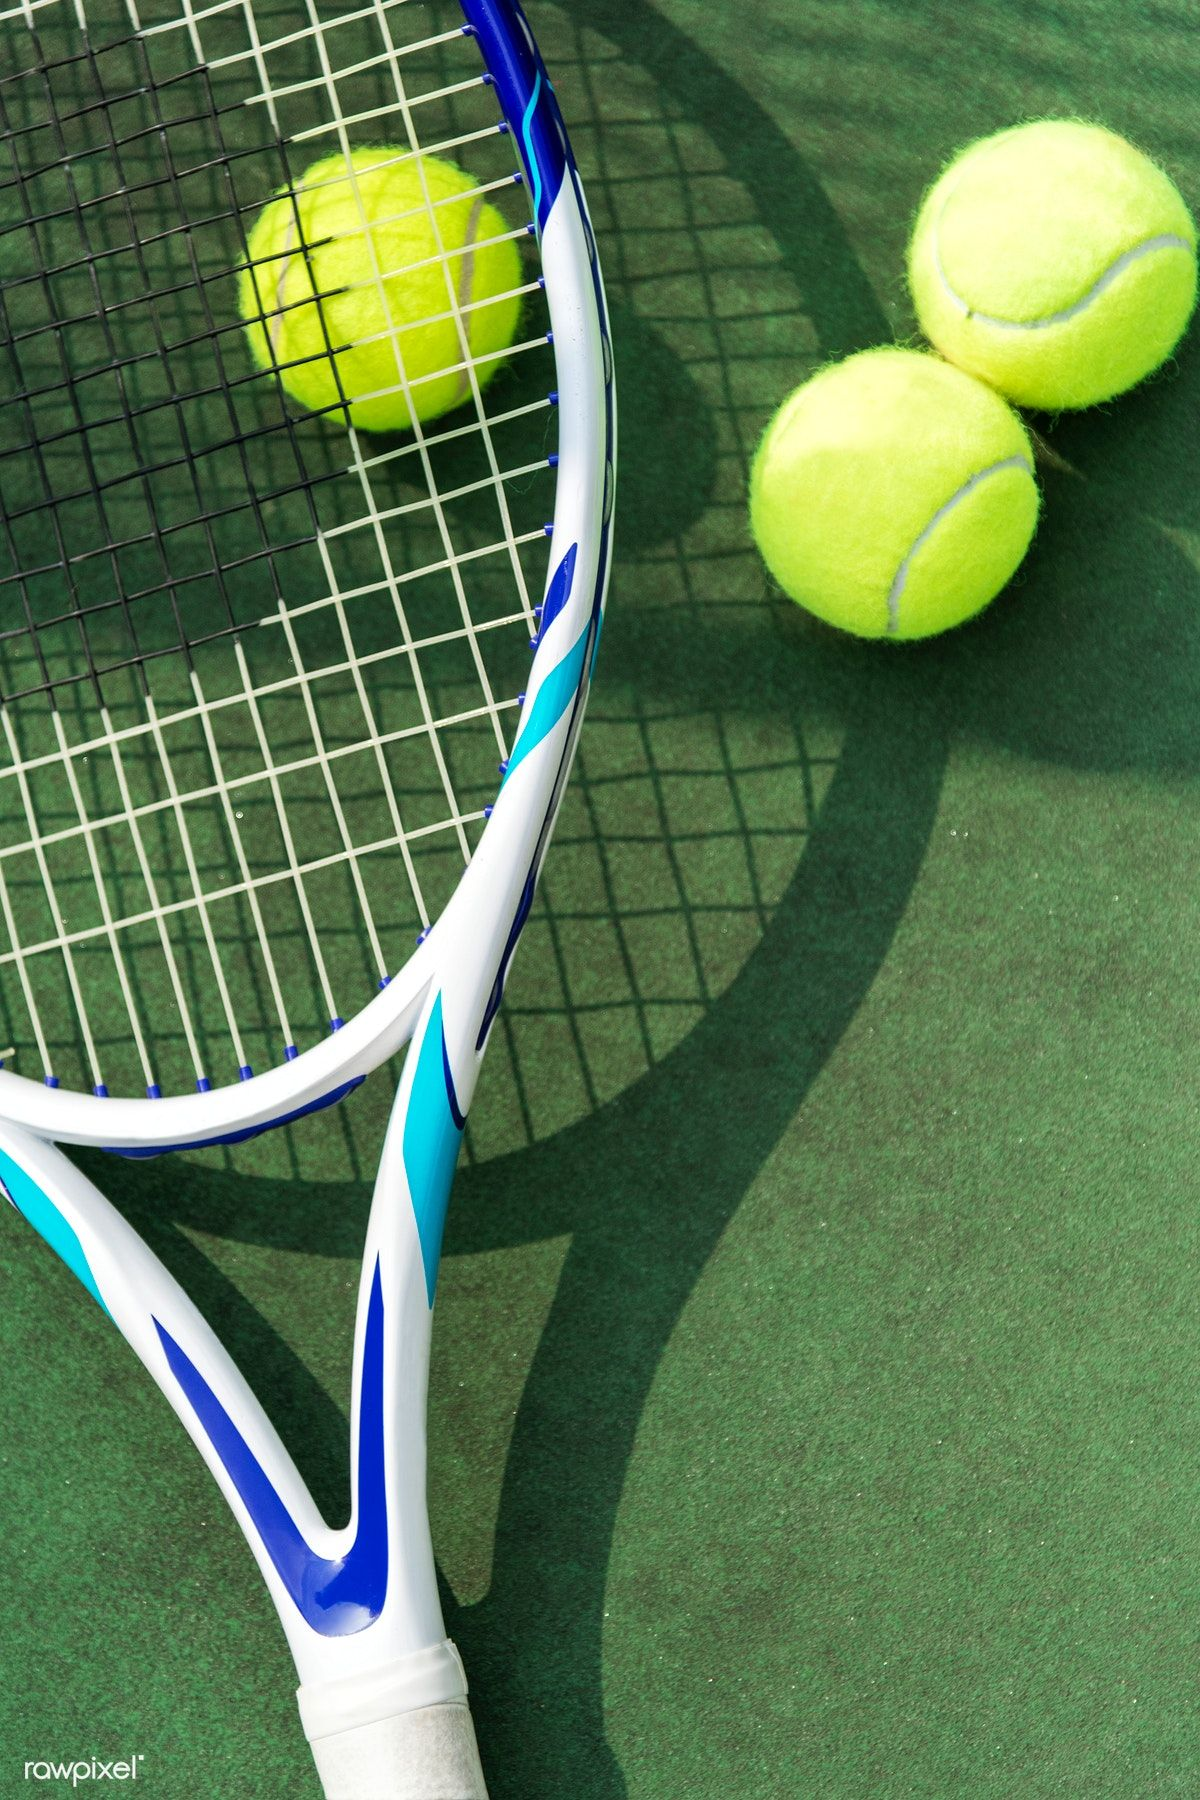 Download Premium Photo Of Tennis Balls On A Tennis Court 413593 Tennis Wallpaper Tennis Balls Tennis